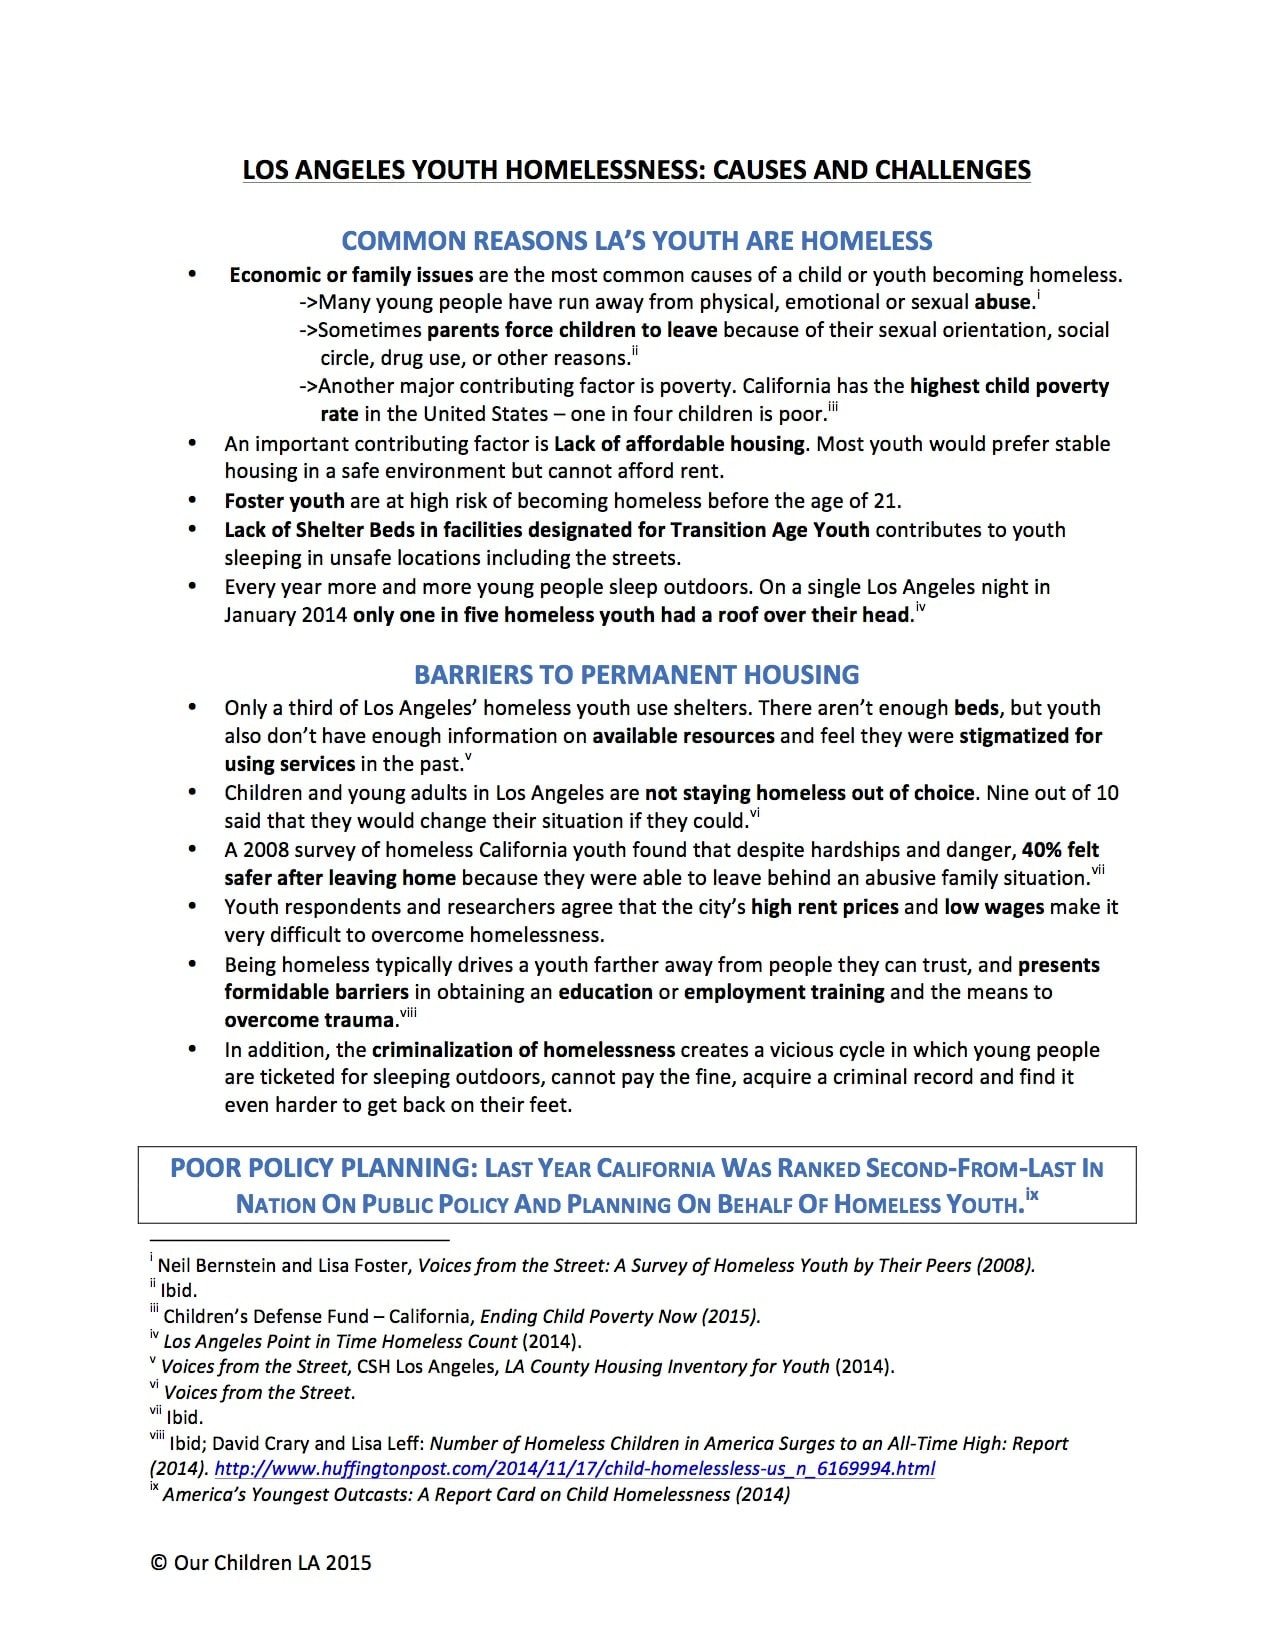 FactSheet_GeneralCauses_and_challenges_2015